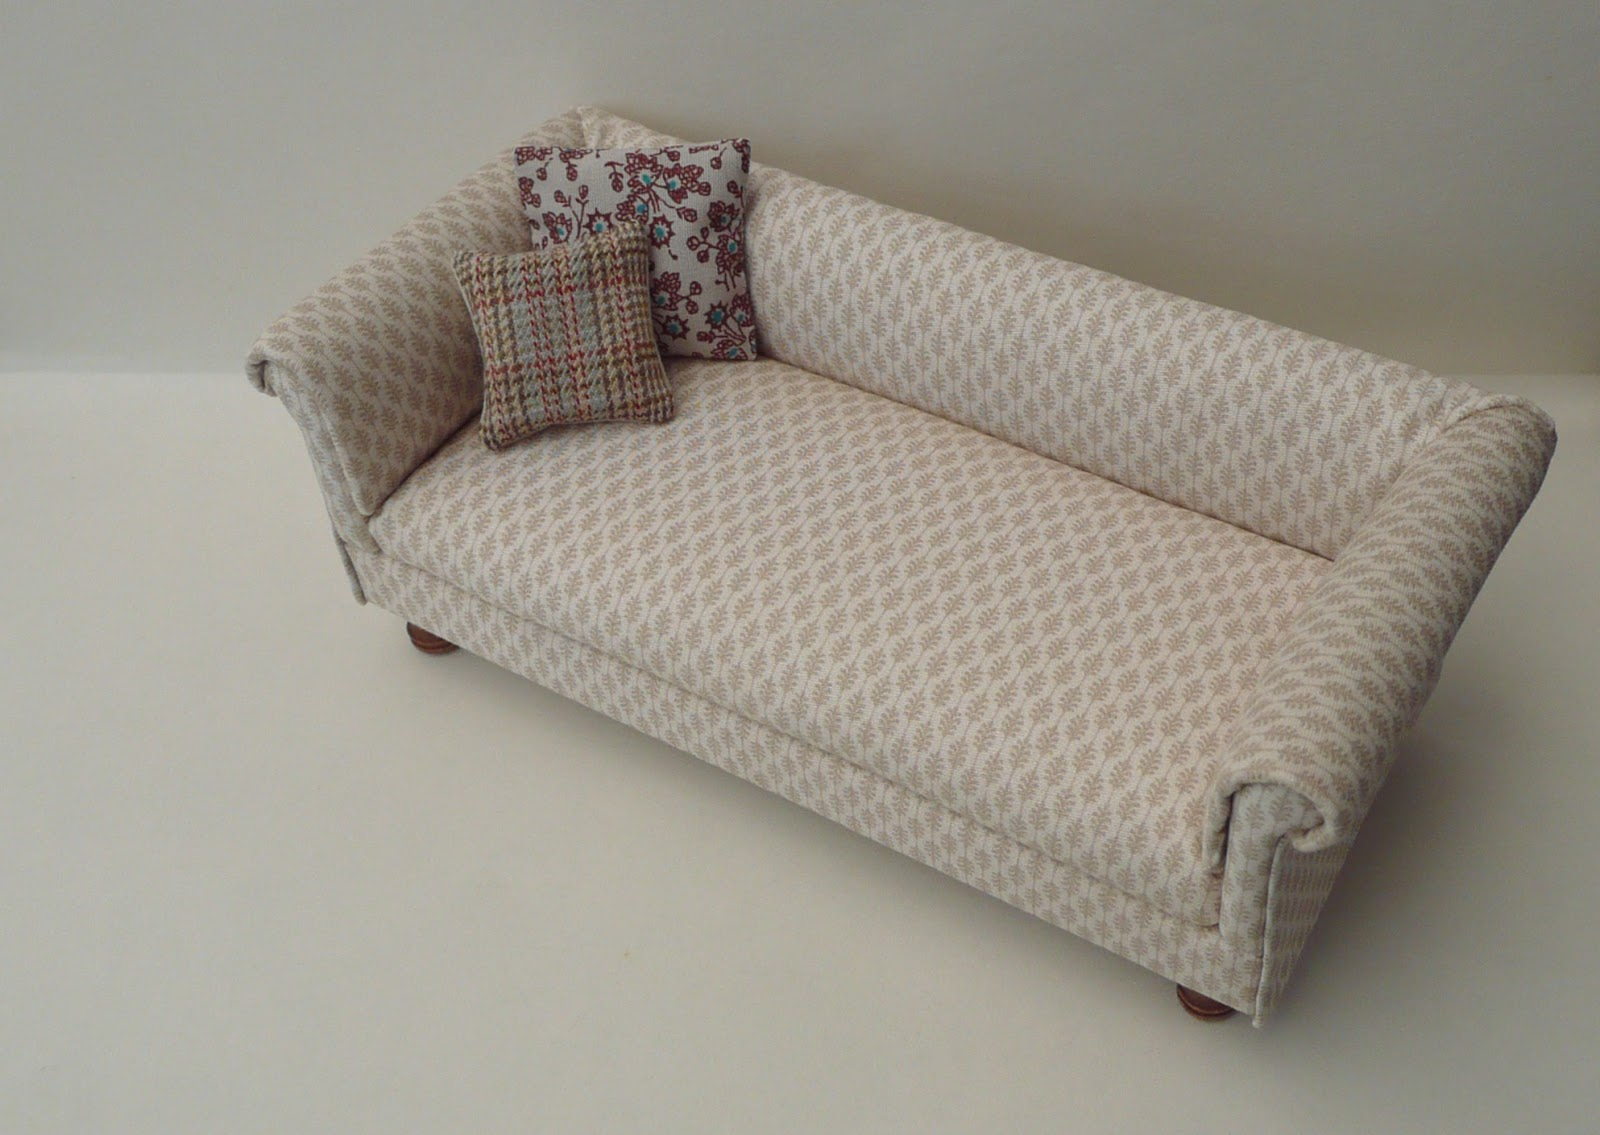 12 foot sofa 2 seater bed melbourne amber 39s house 1 just needs feet